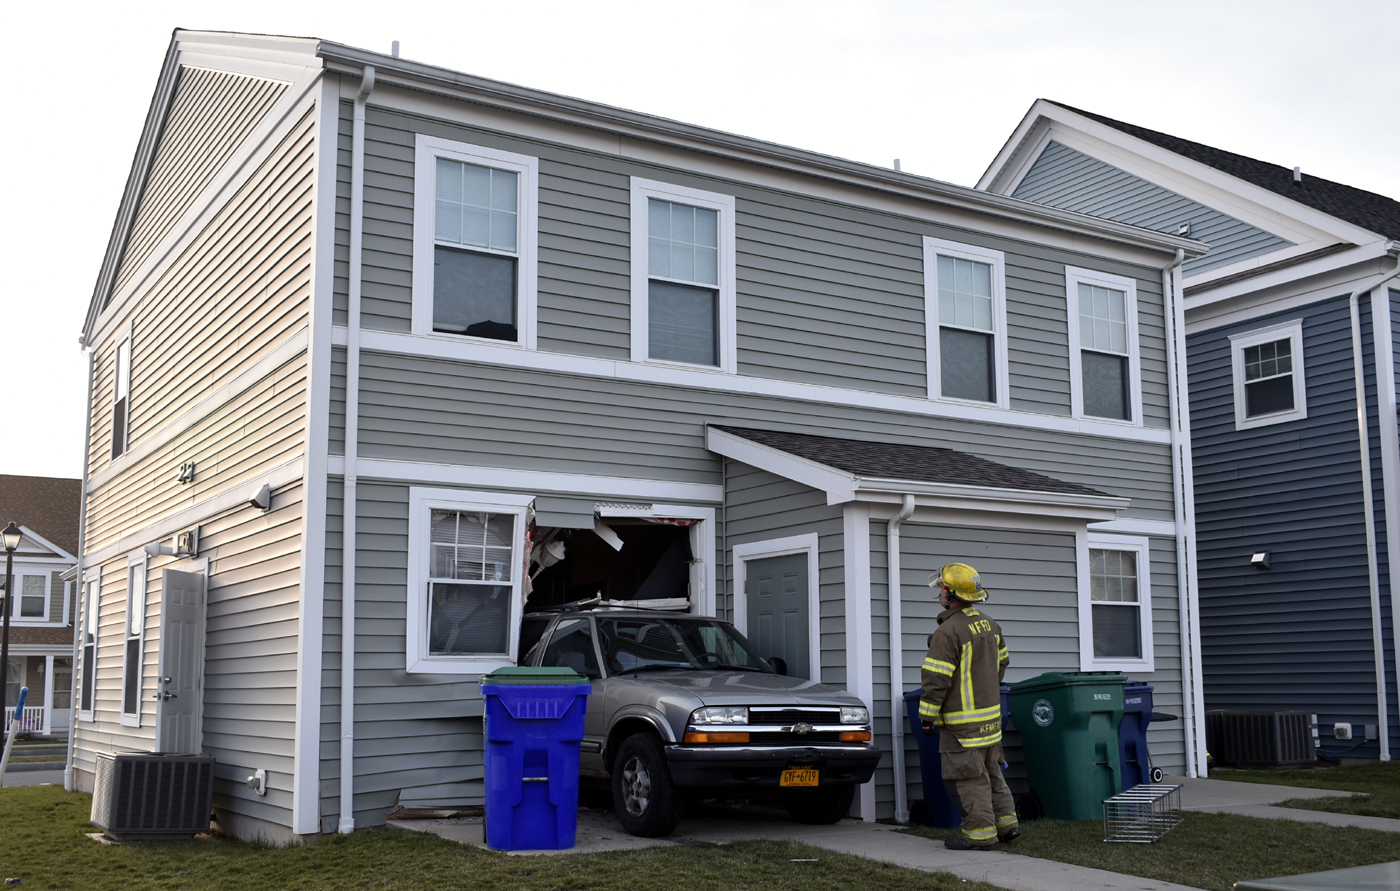 A car crashed into a home on Hope Boulevard in Niagara Falls. (Larry Kensinger/Special to The News)